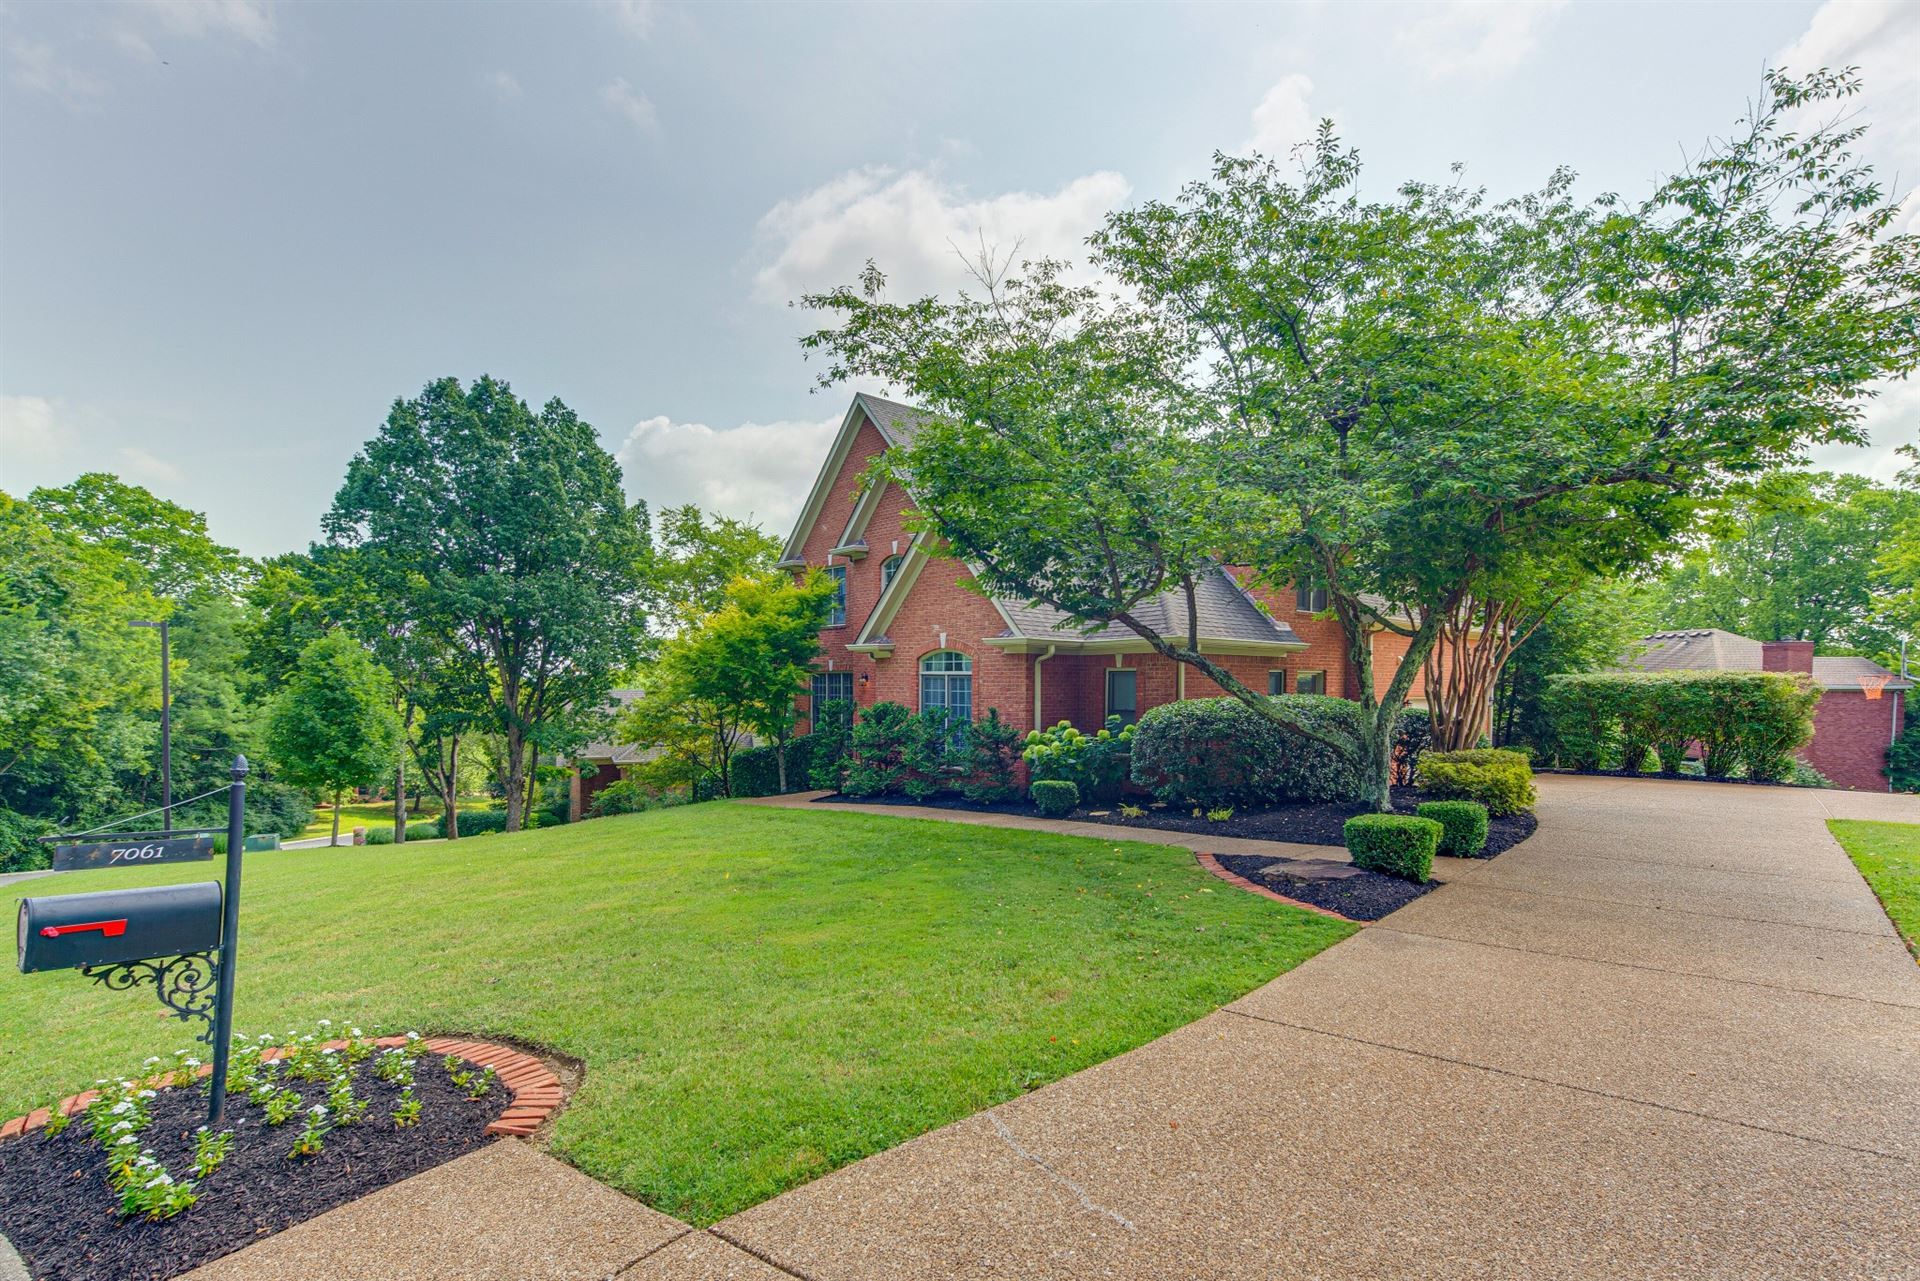 7061 Willowick Dr, Brentwood, TN 37027 - MLS#: 2276774